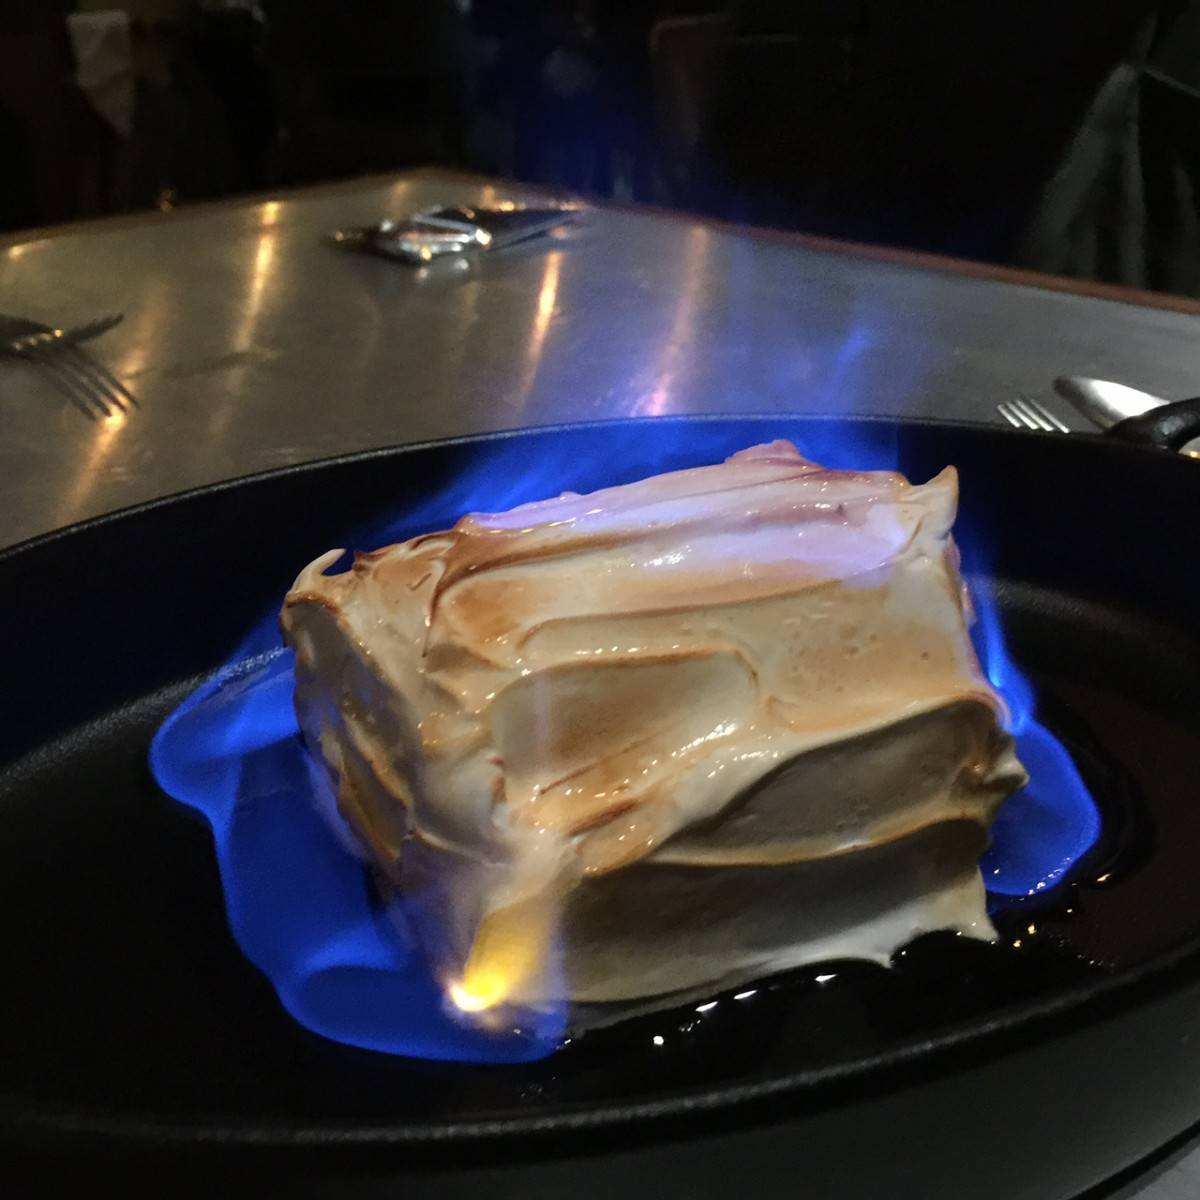 mr & mrs fox quarry bay dessert baked alaska elaine white